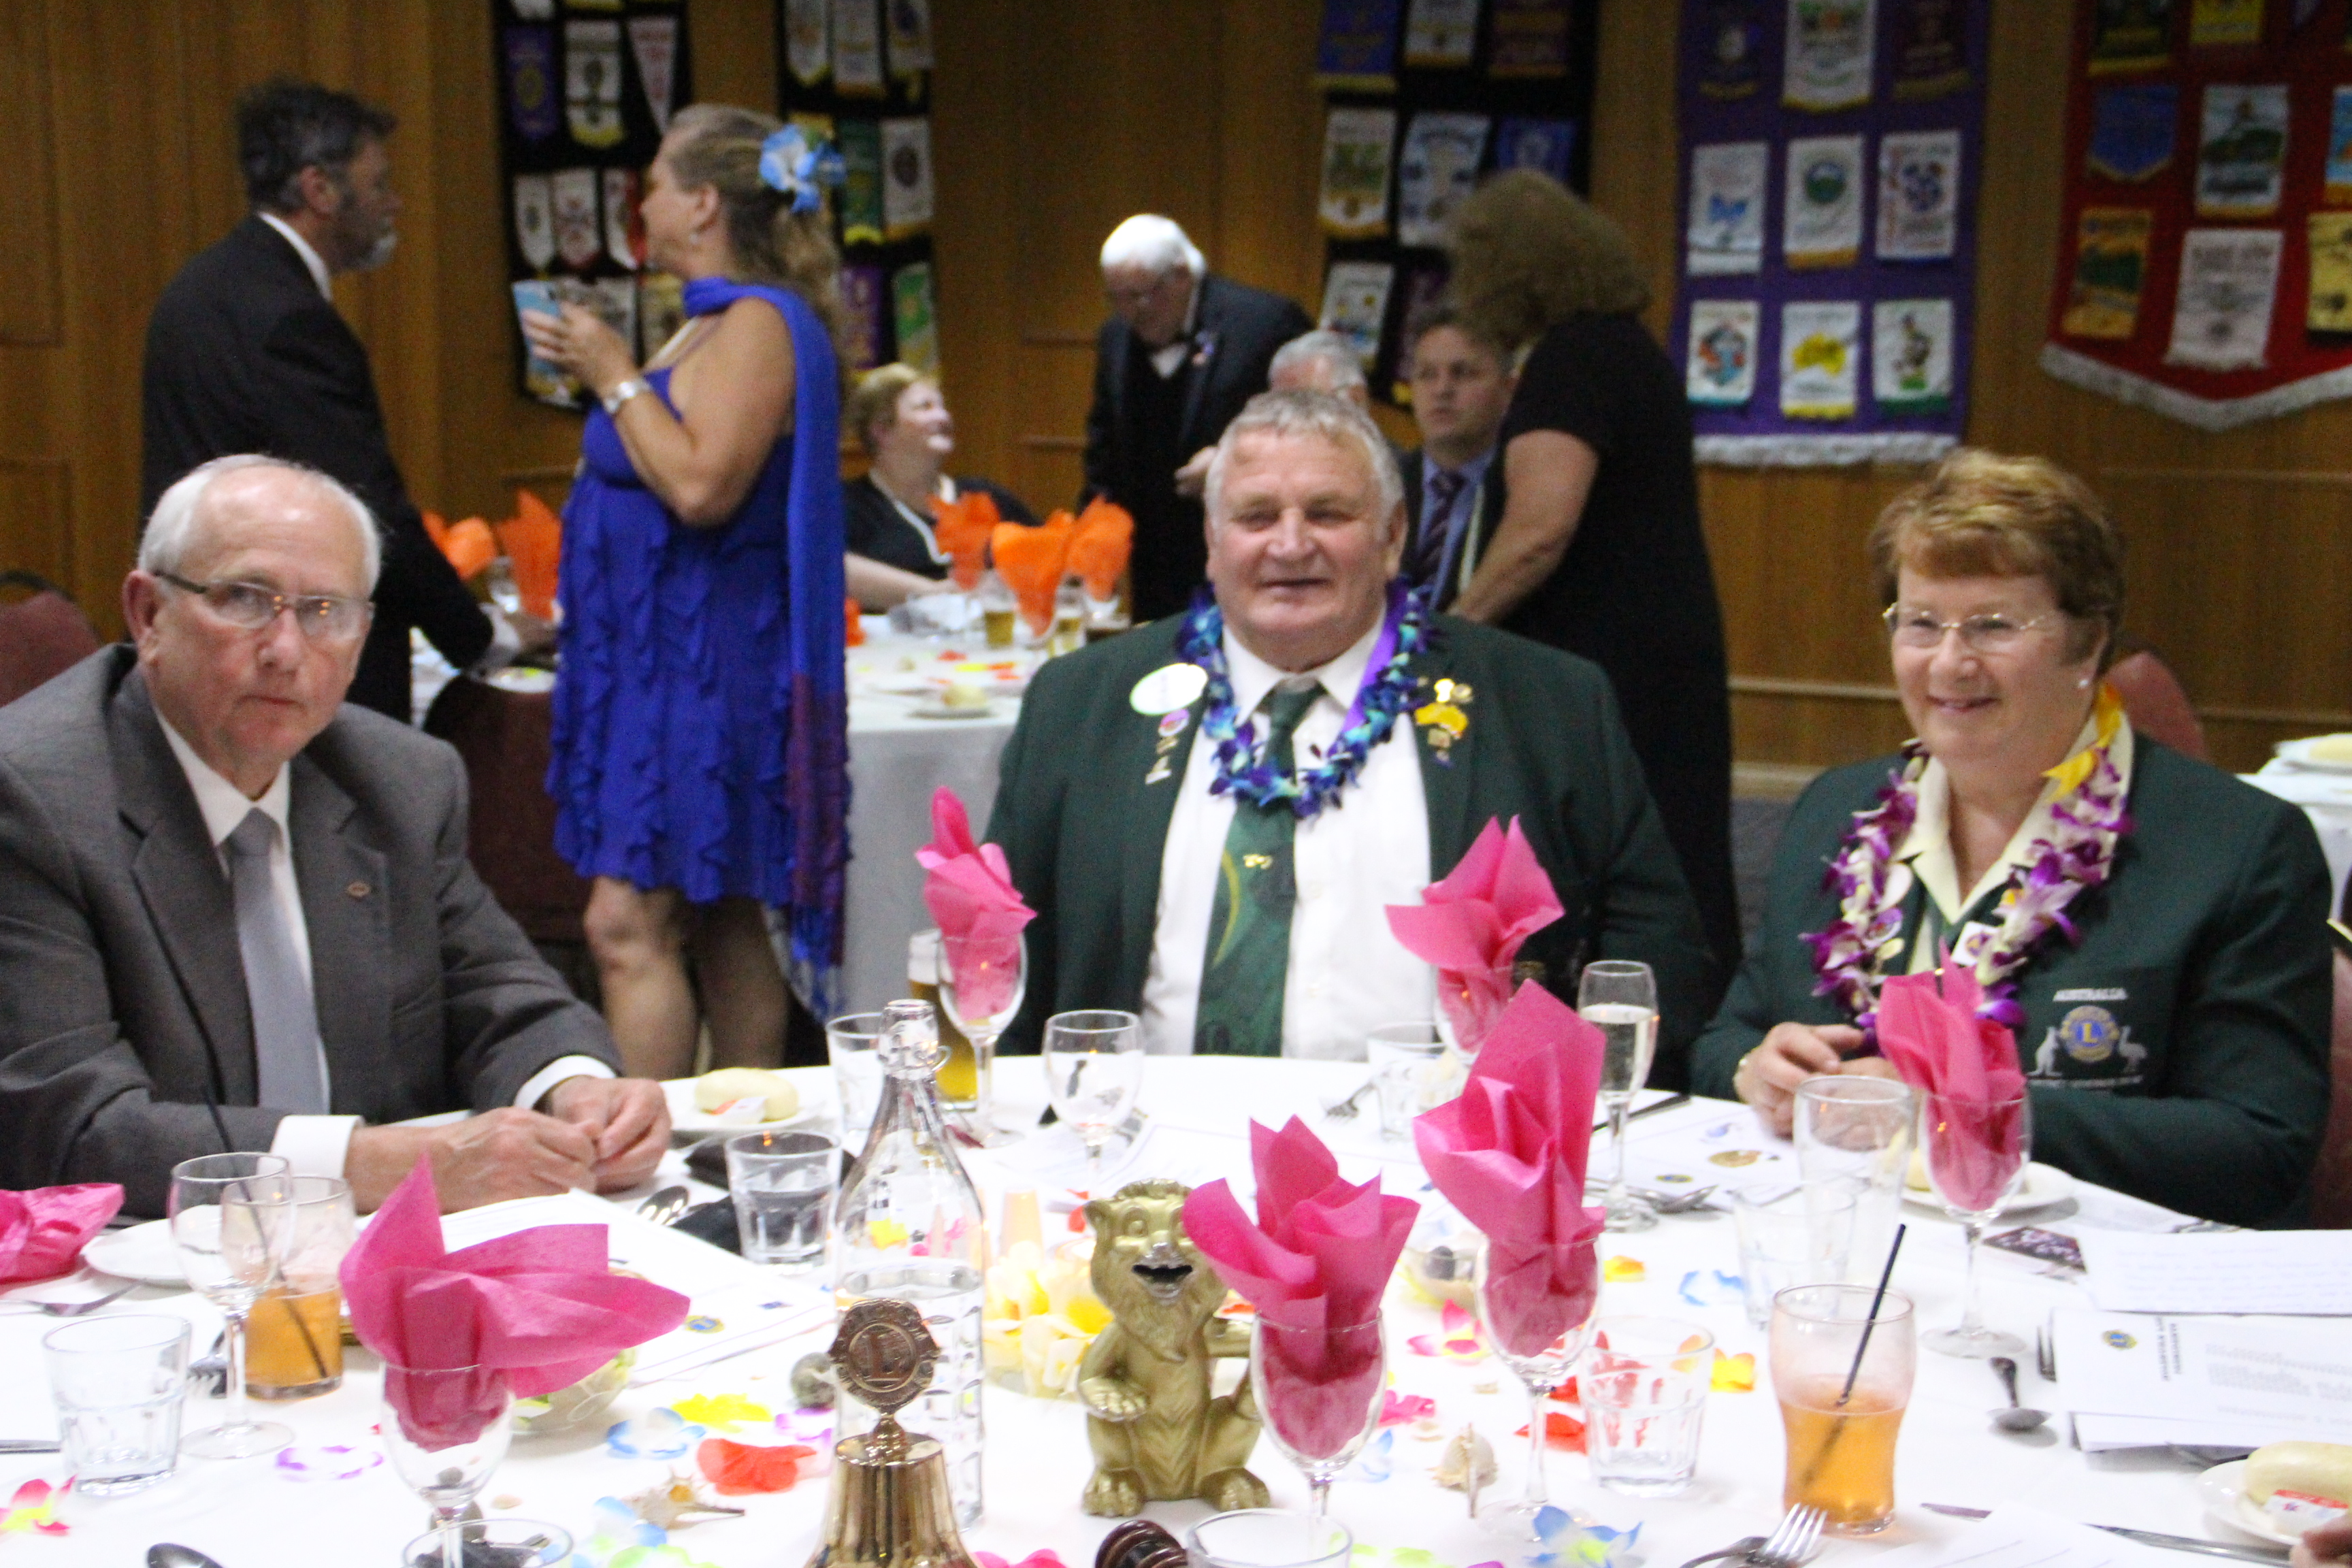 District Governor Sally Wilton, with her husband Lion Stan Wilton and Campbelltown Mayor, Lion Paul Hawker